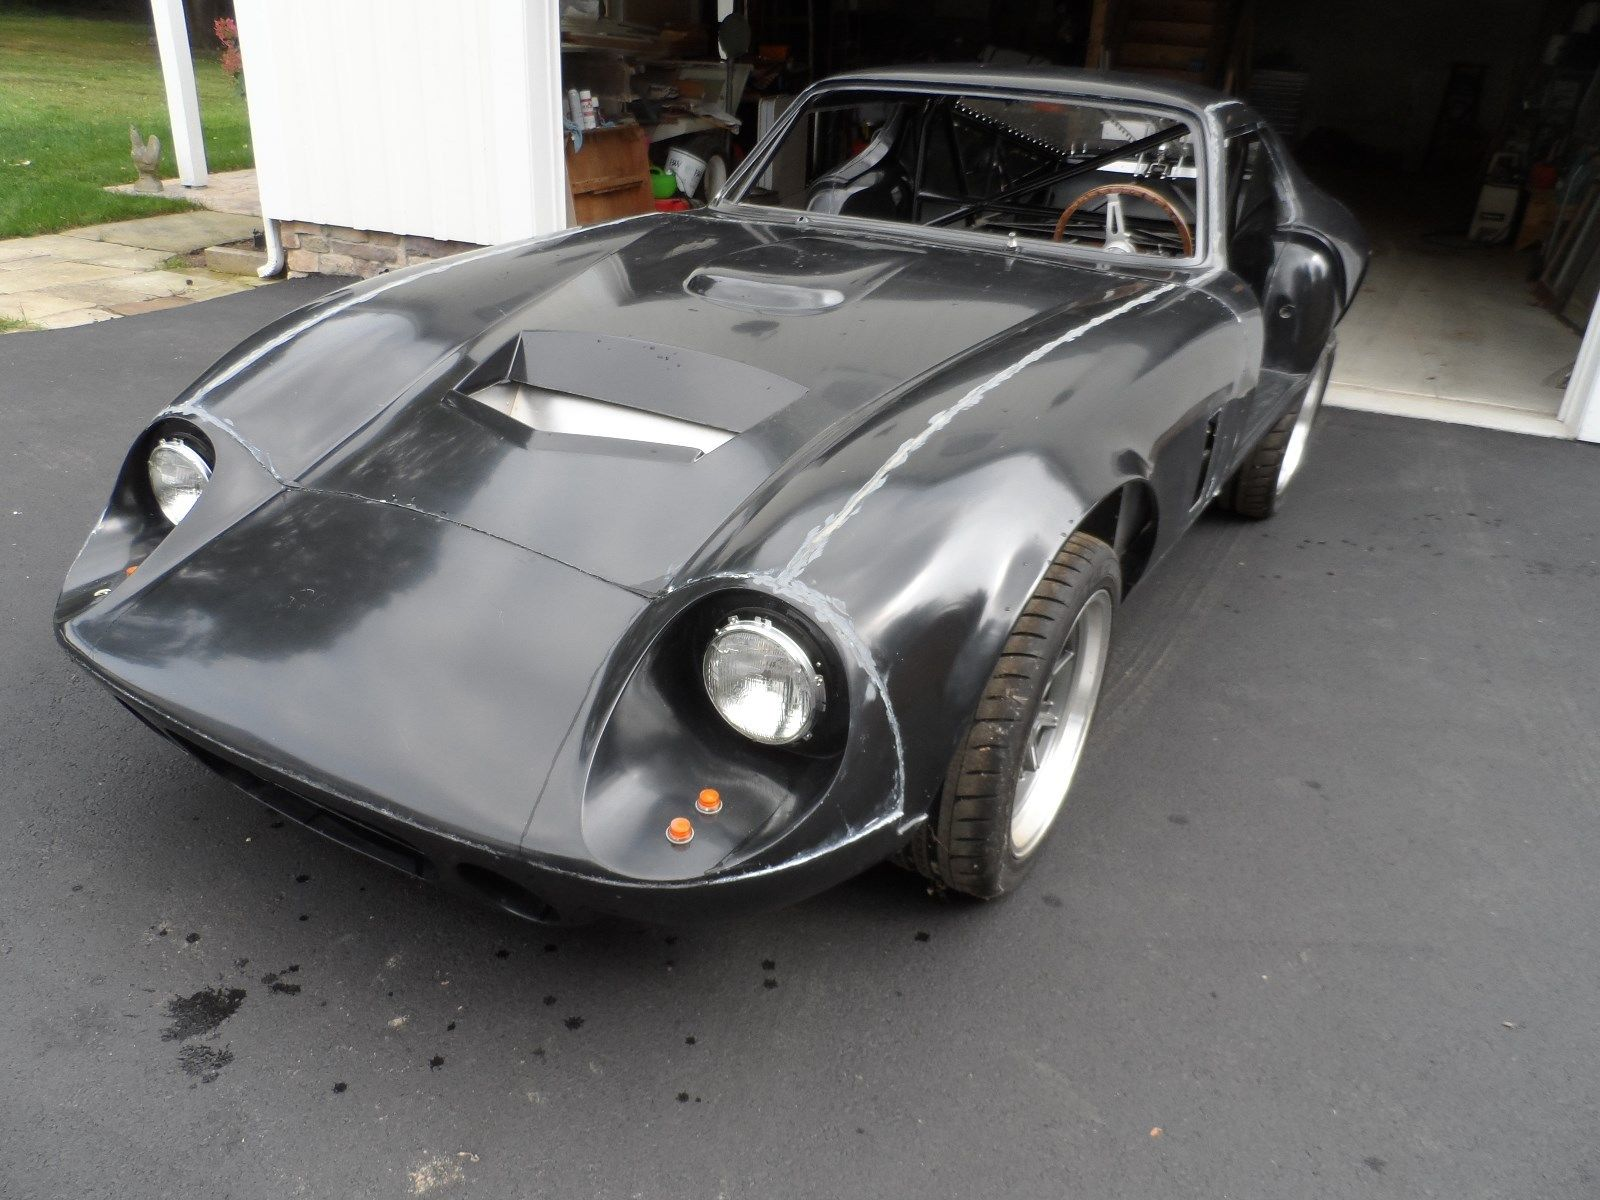 Project Replica Ffr Daytona Coupe For Sale on Battery Kill Switch For Cars